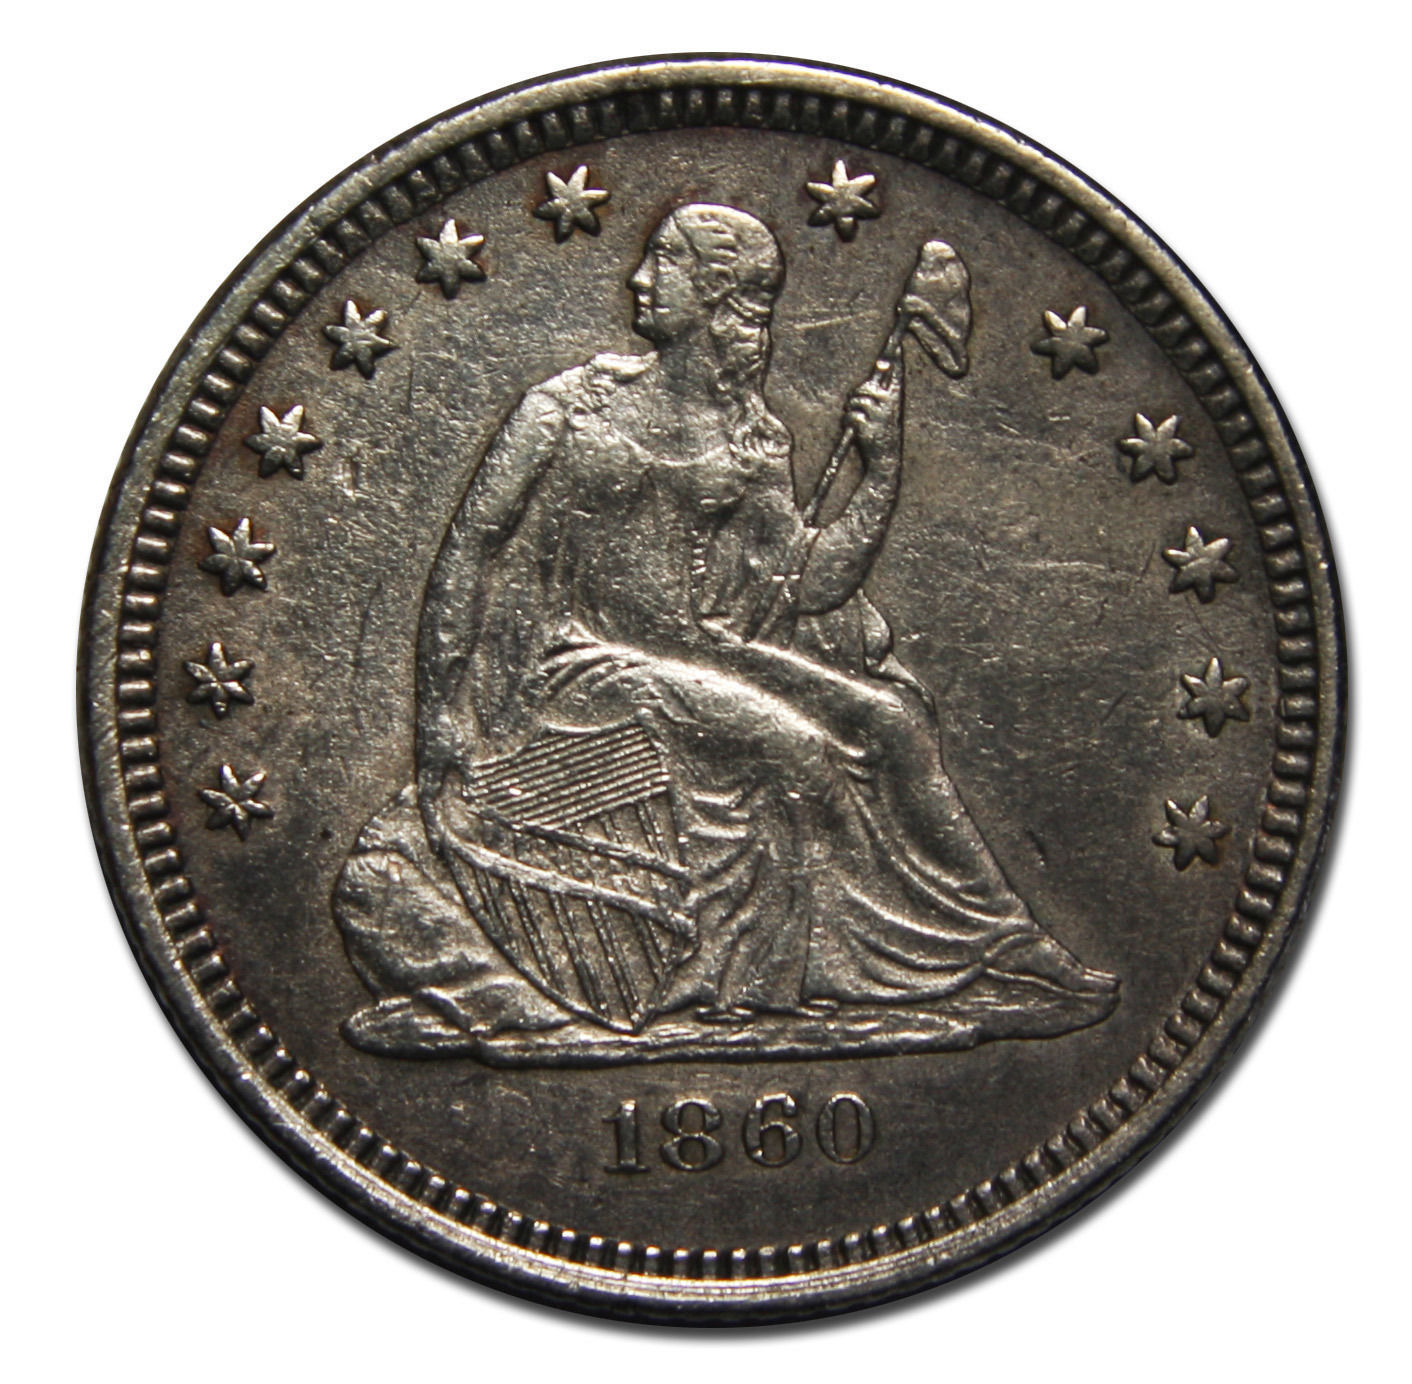 1860O Seated Liberty Silver Quarter Dollar .25 Coin Lot # MZ 3976